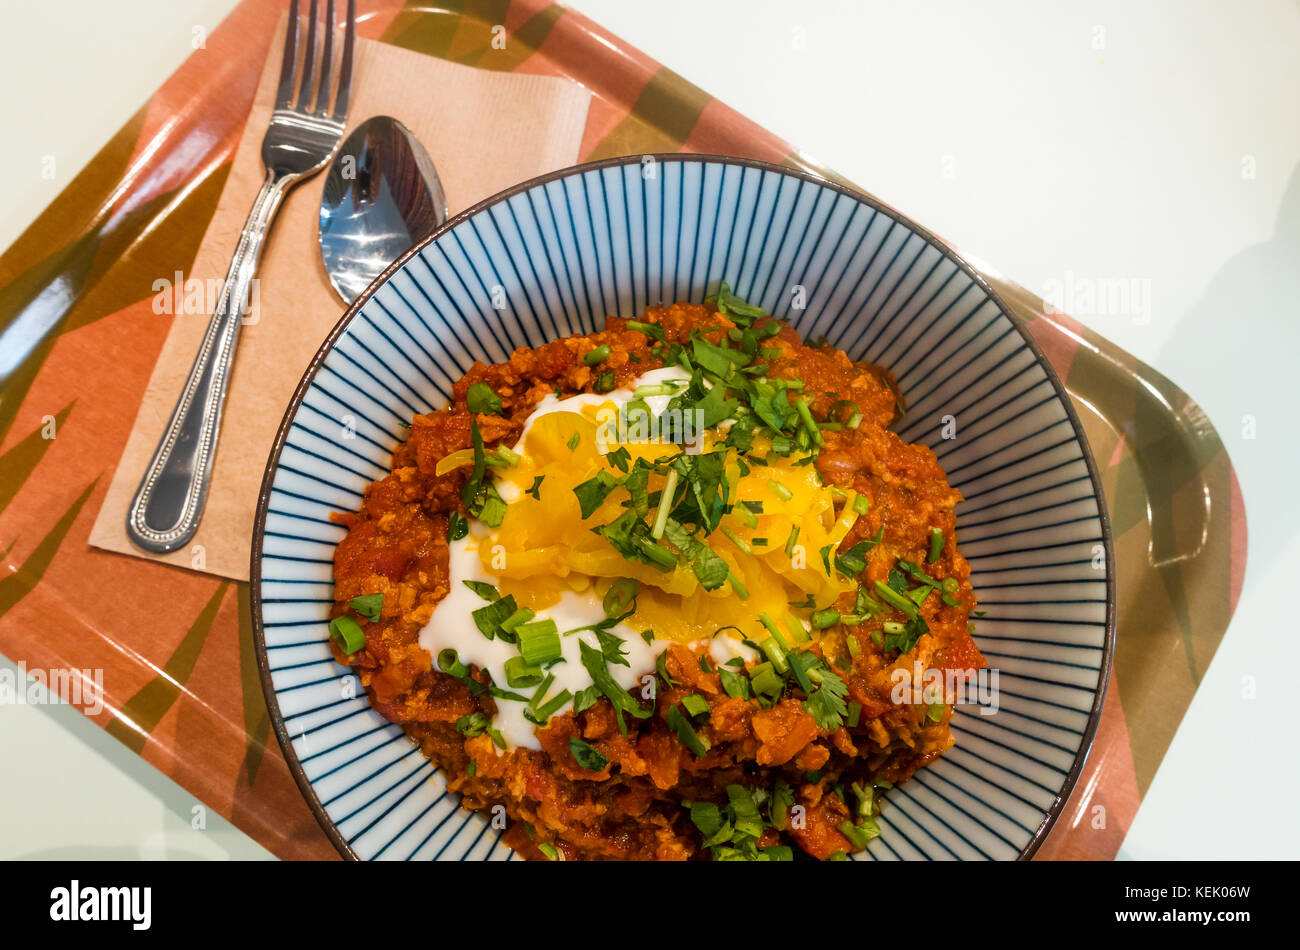 Spicy chili sin carne, a vegetarian dish served at Le Botaniste in SoHo, New York City - Stock Image